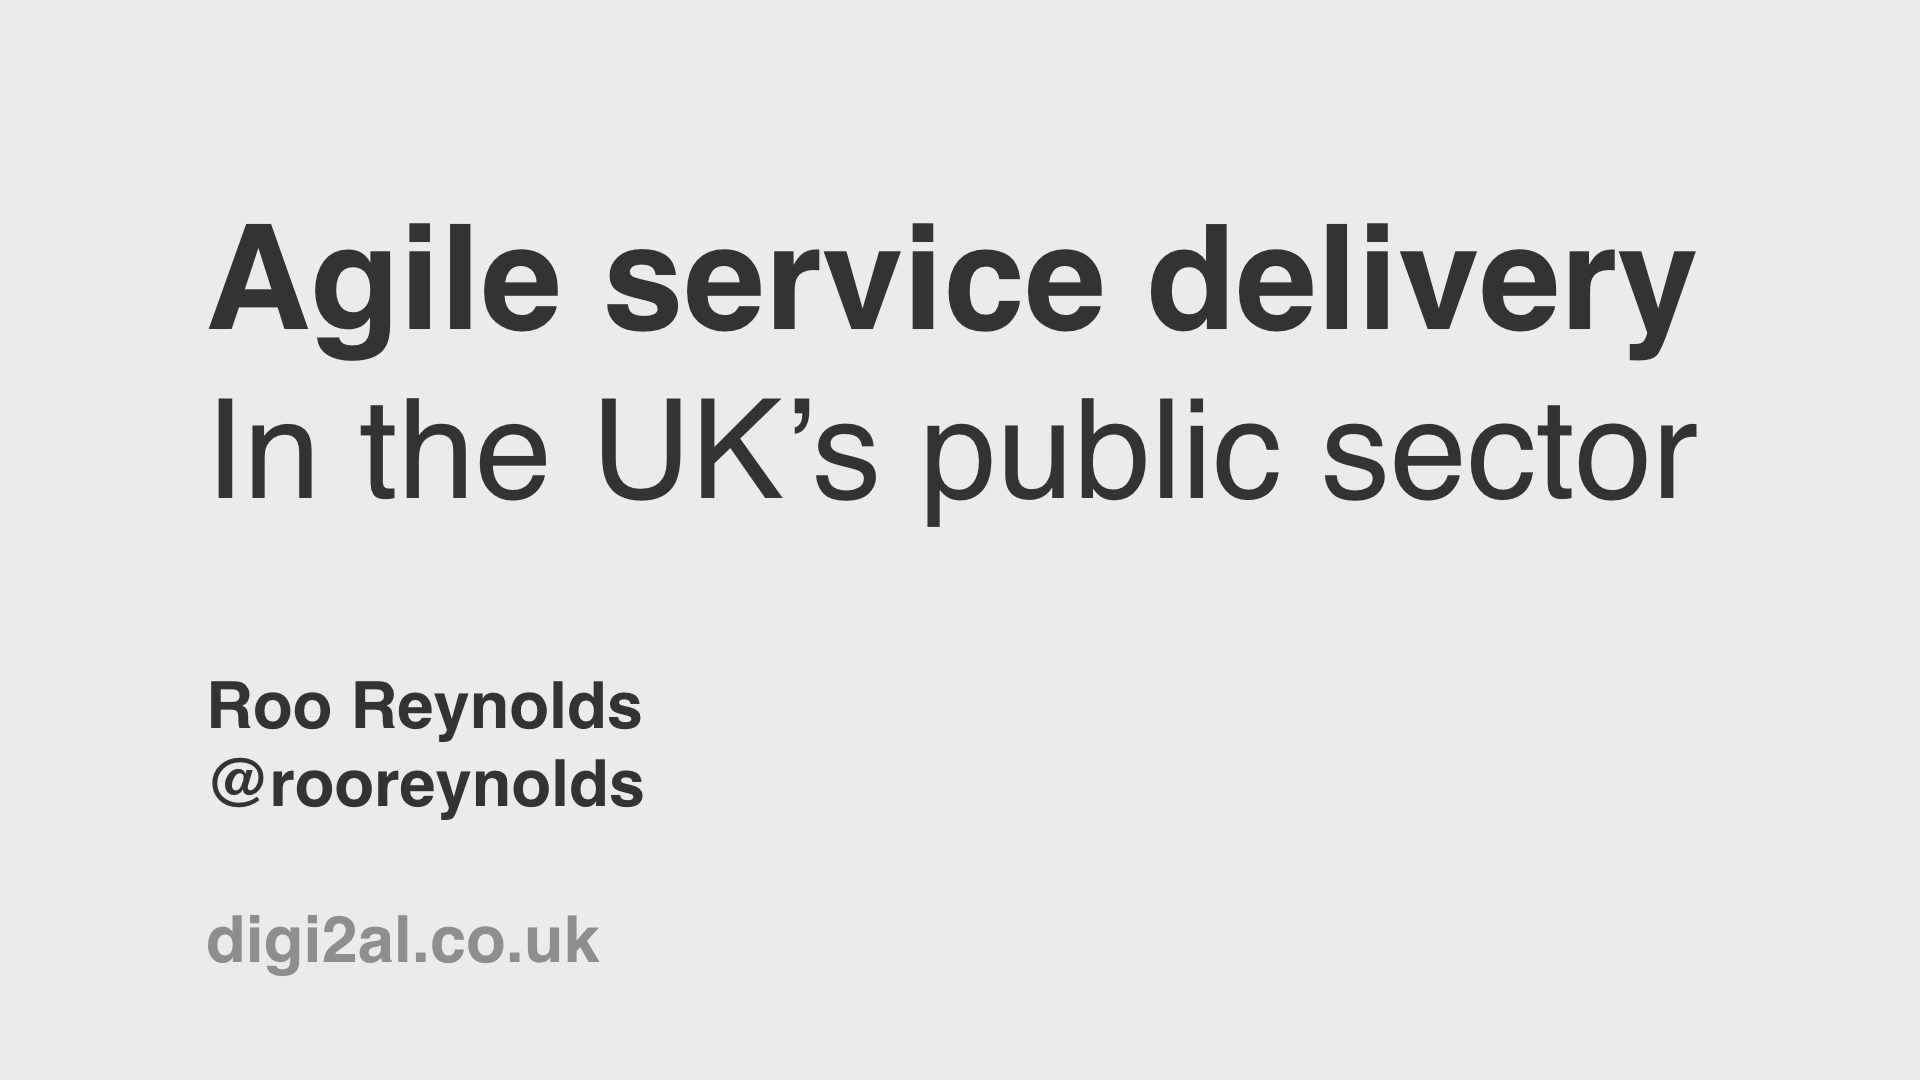 Title slide: 'Agile service delivery in the UK's public sector'